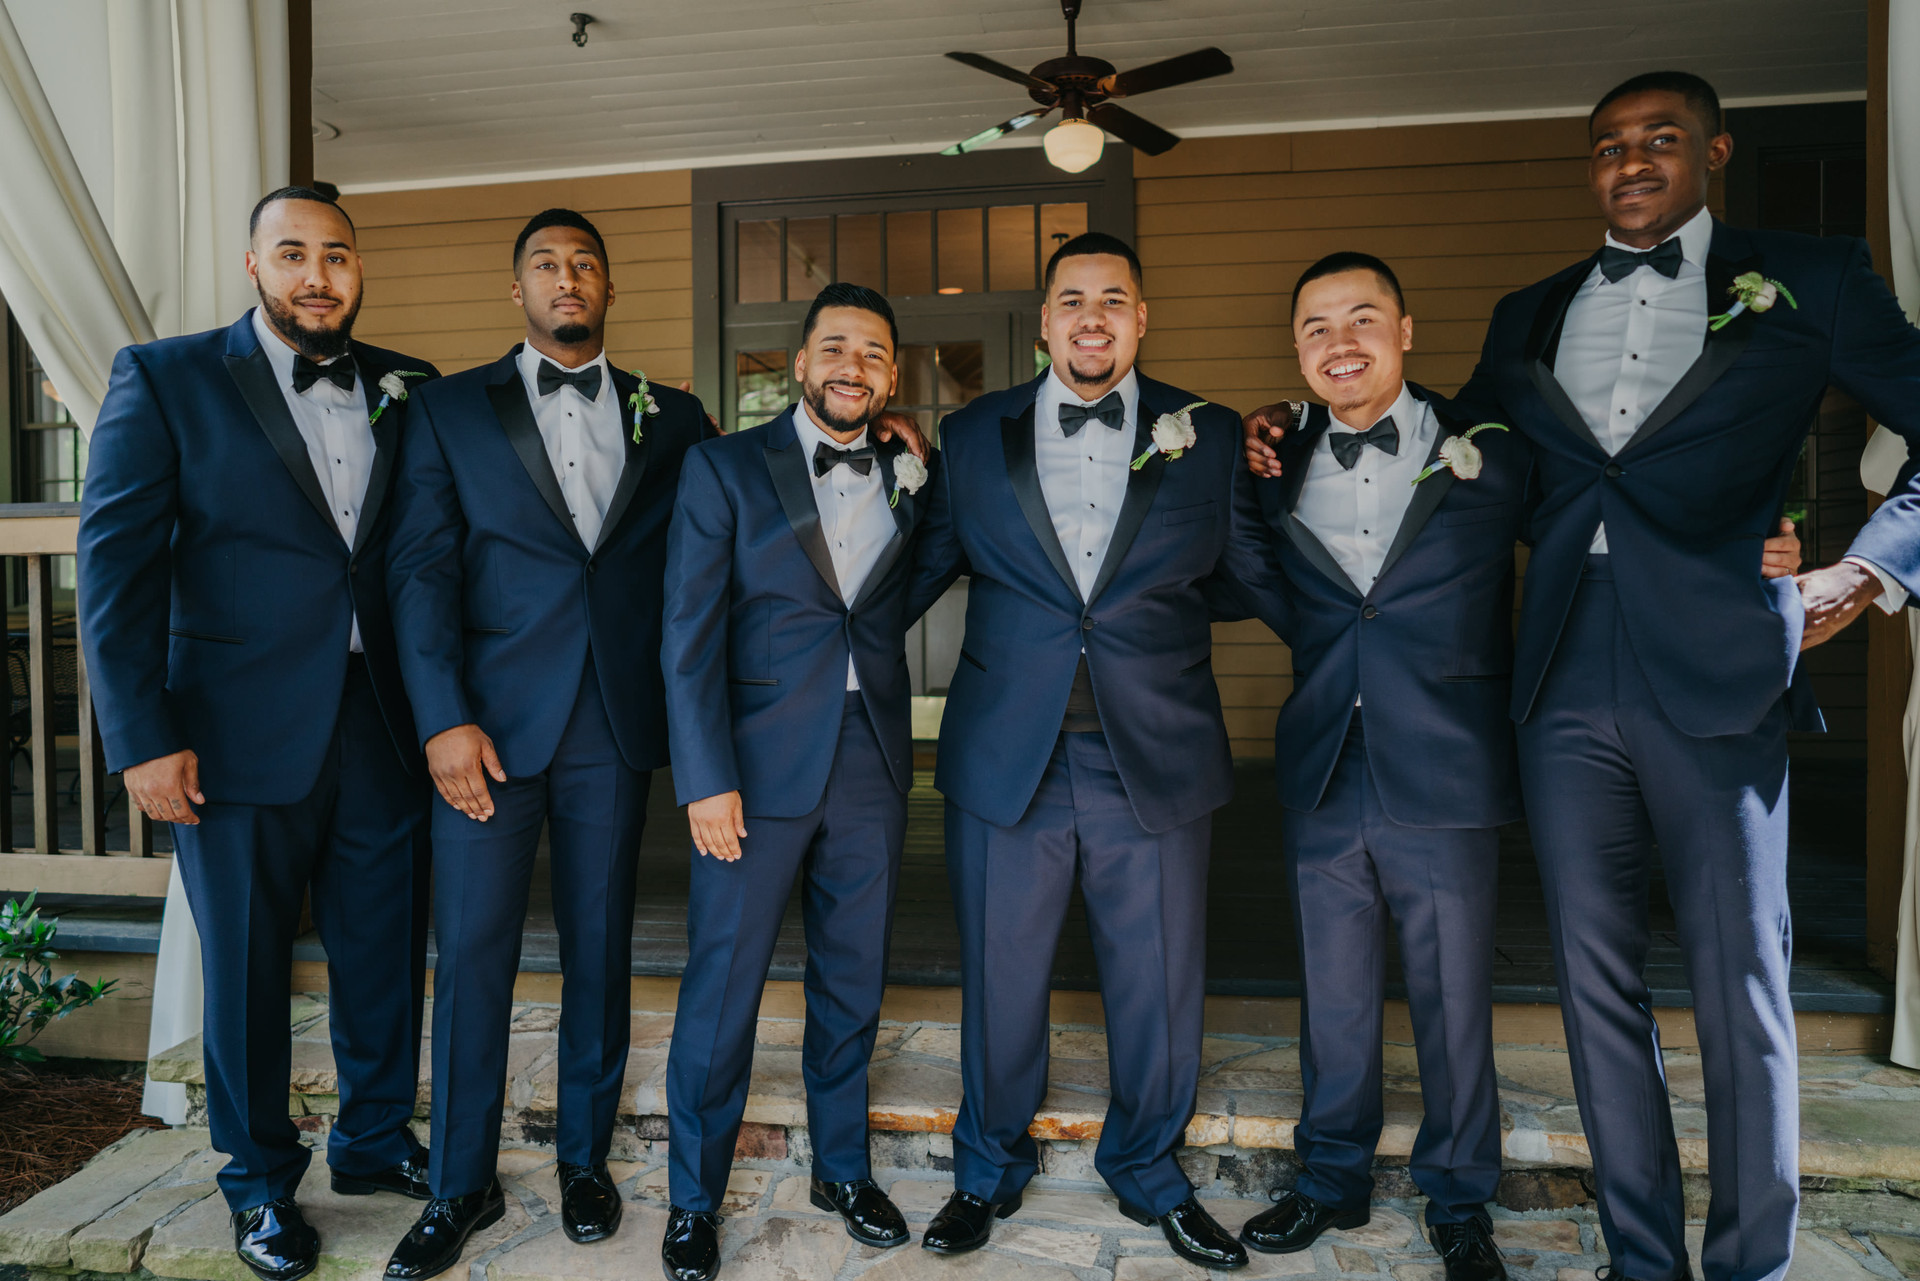 2018-may25-franciscoegonzalez-atl-weddin